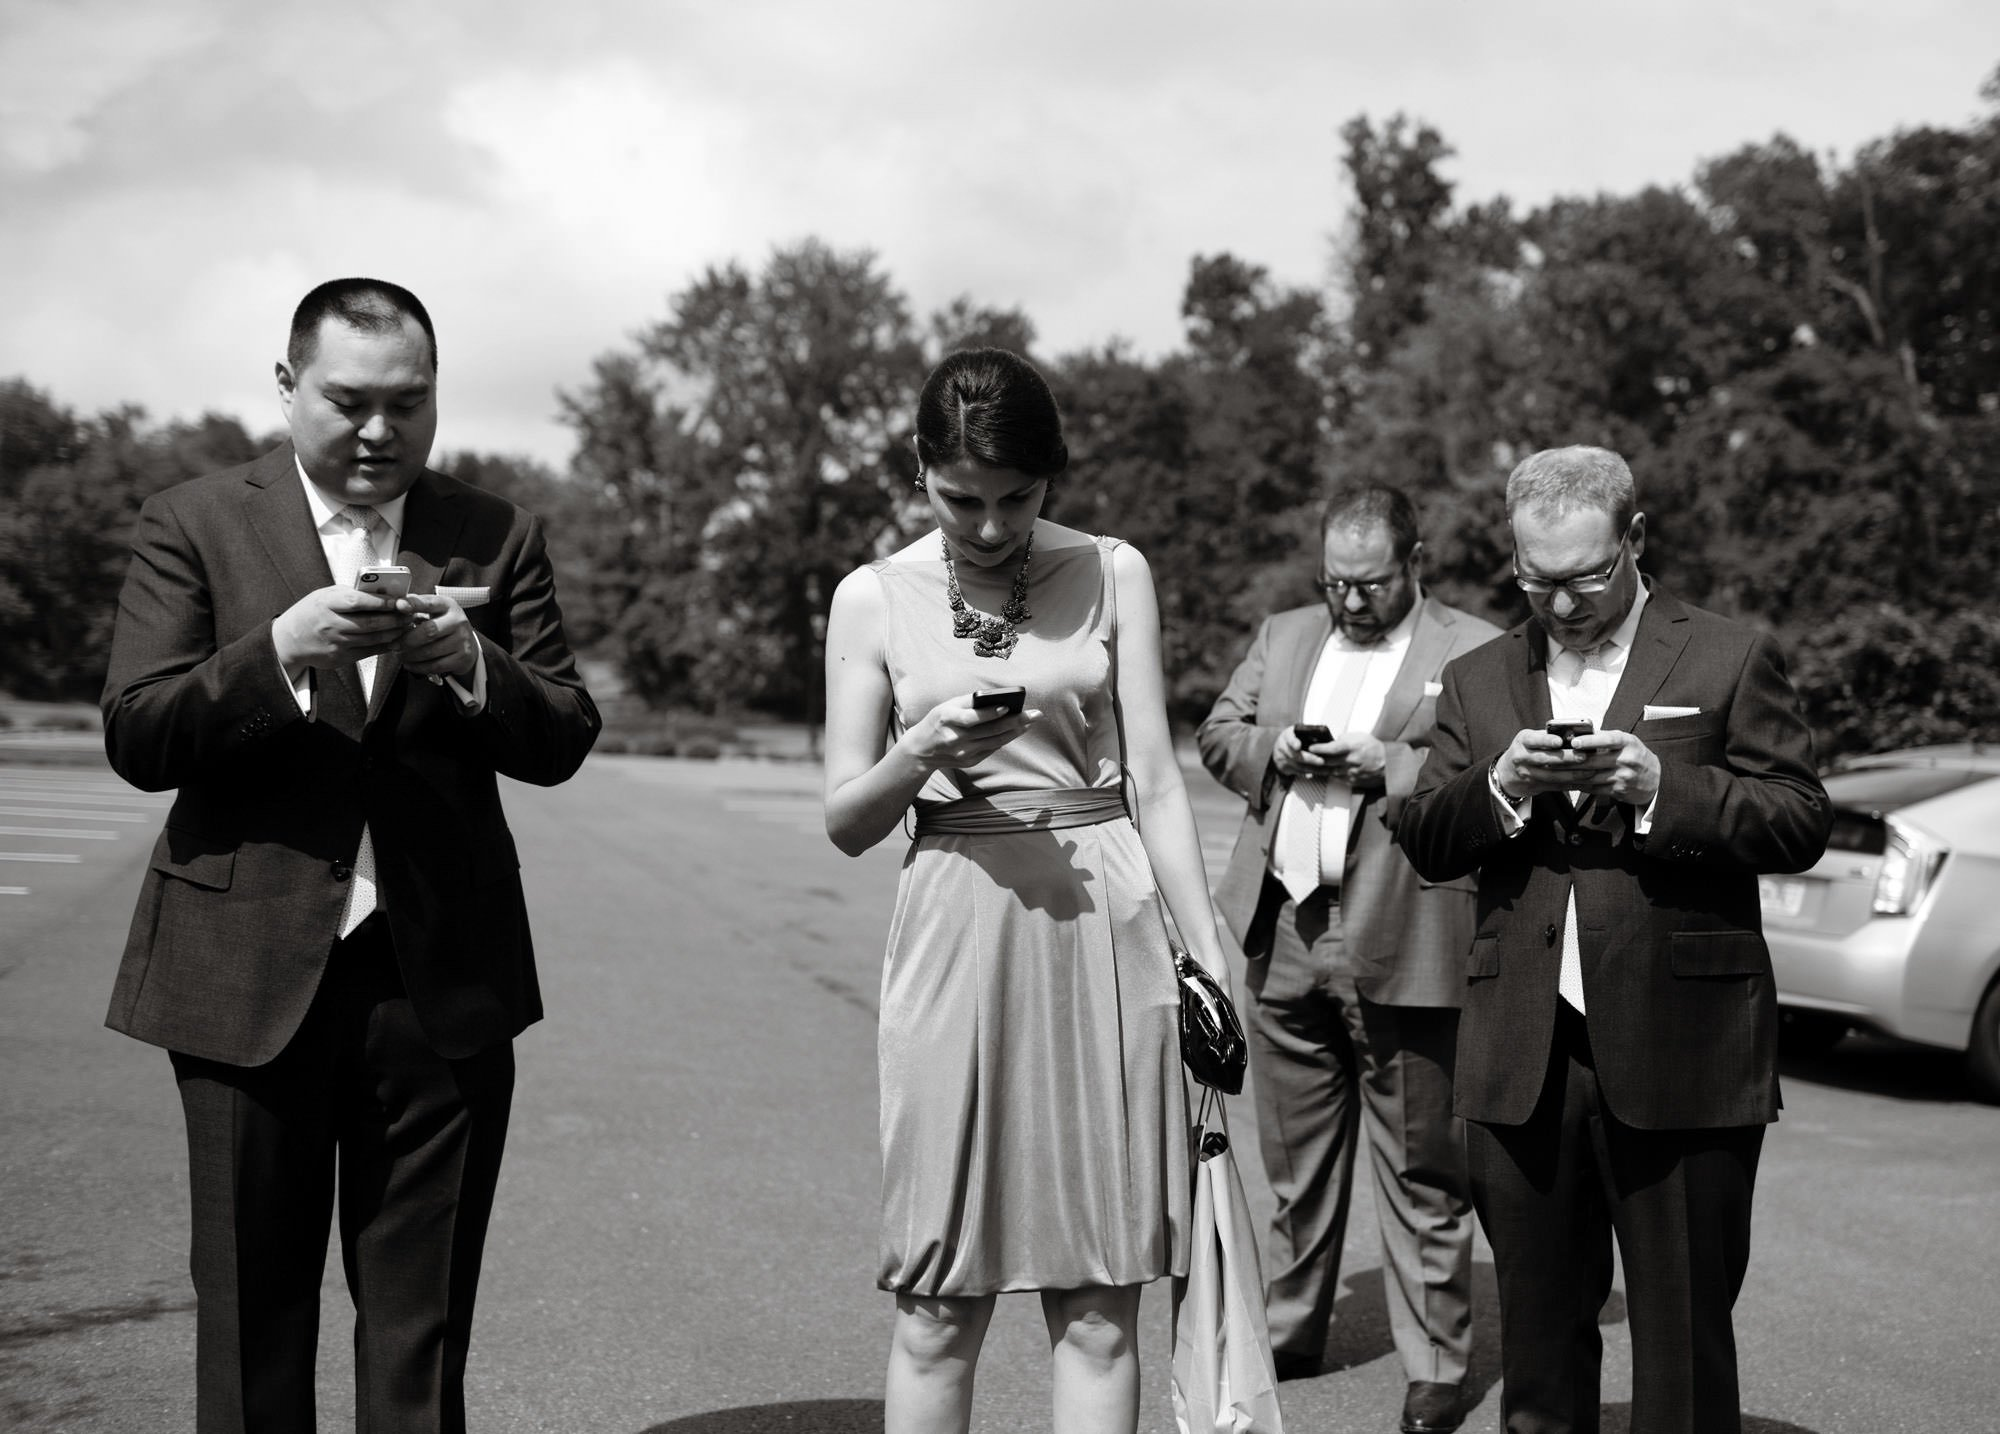 The wedding party looks at their phones in the parking lot of Oxon Hill Manor.